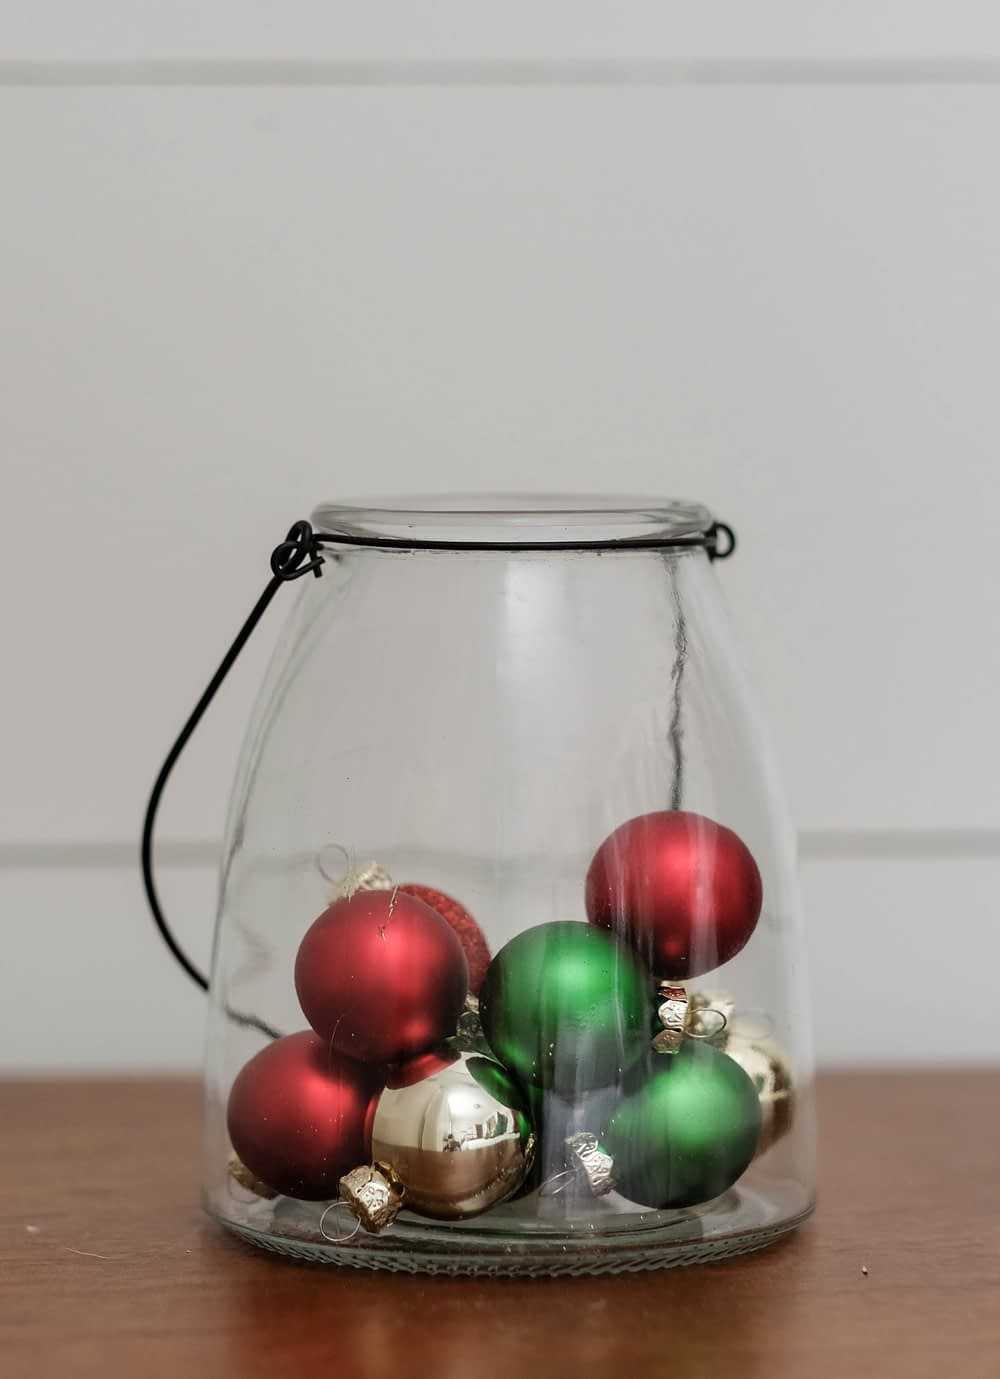 Christmas decor ideas using a glass lantern filled with mini ornaments